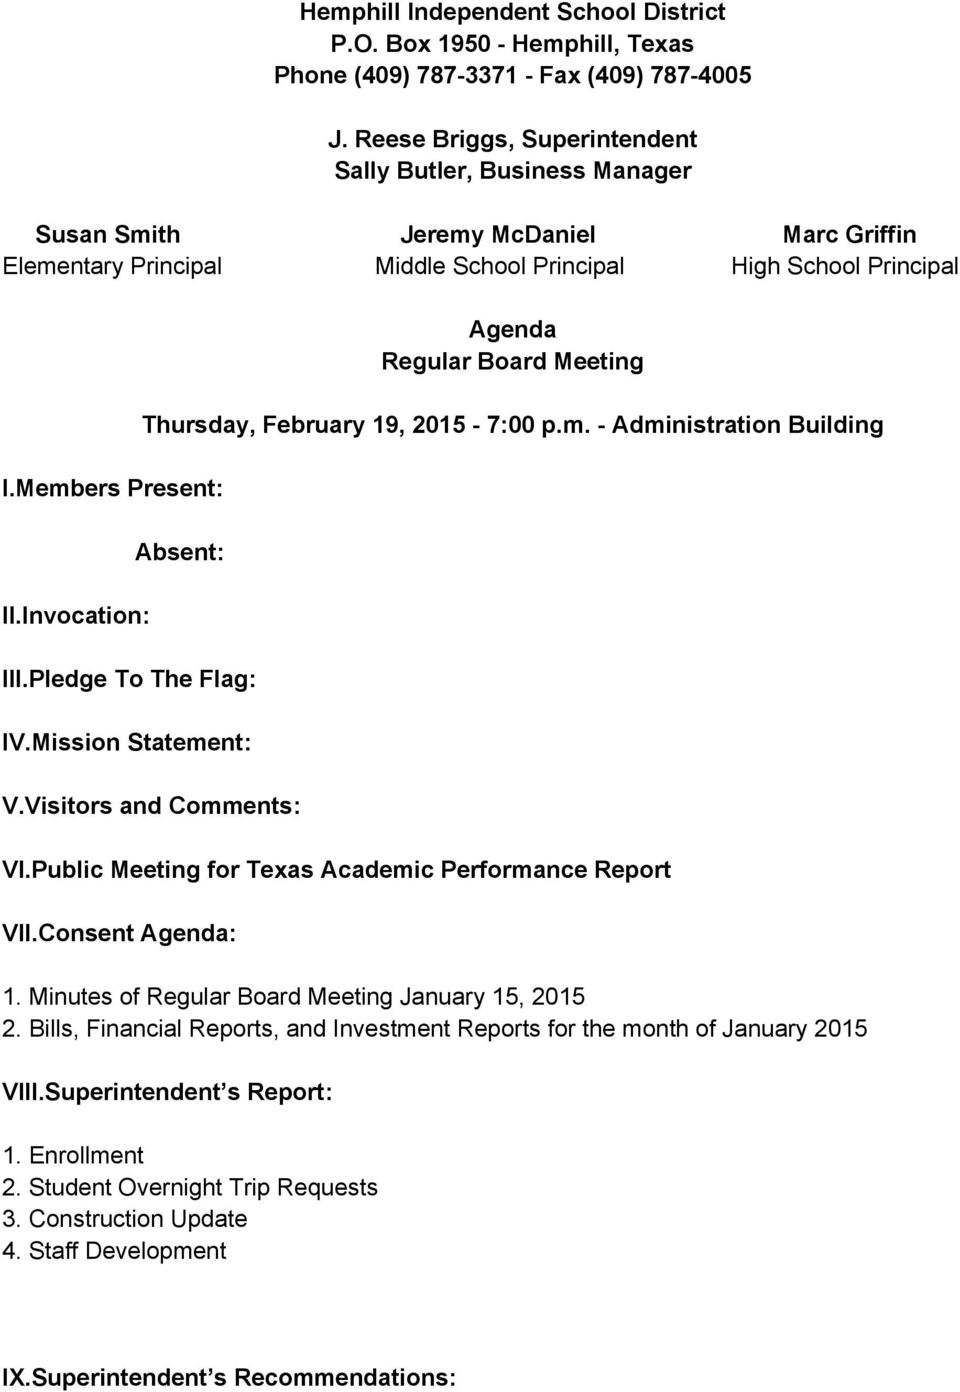 Invocation: Agenda Regular Board Meeting Thursday, February 19, 2015-7:00 p.m. - Administration Building Absent: III.Pledge To The Flag: IV.Mission Statement: V.Visitors and Comments: VI.